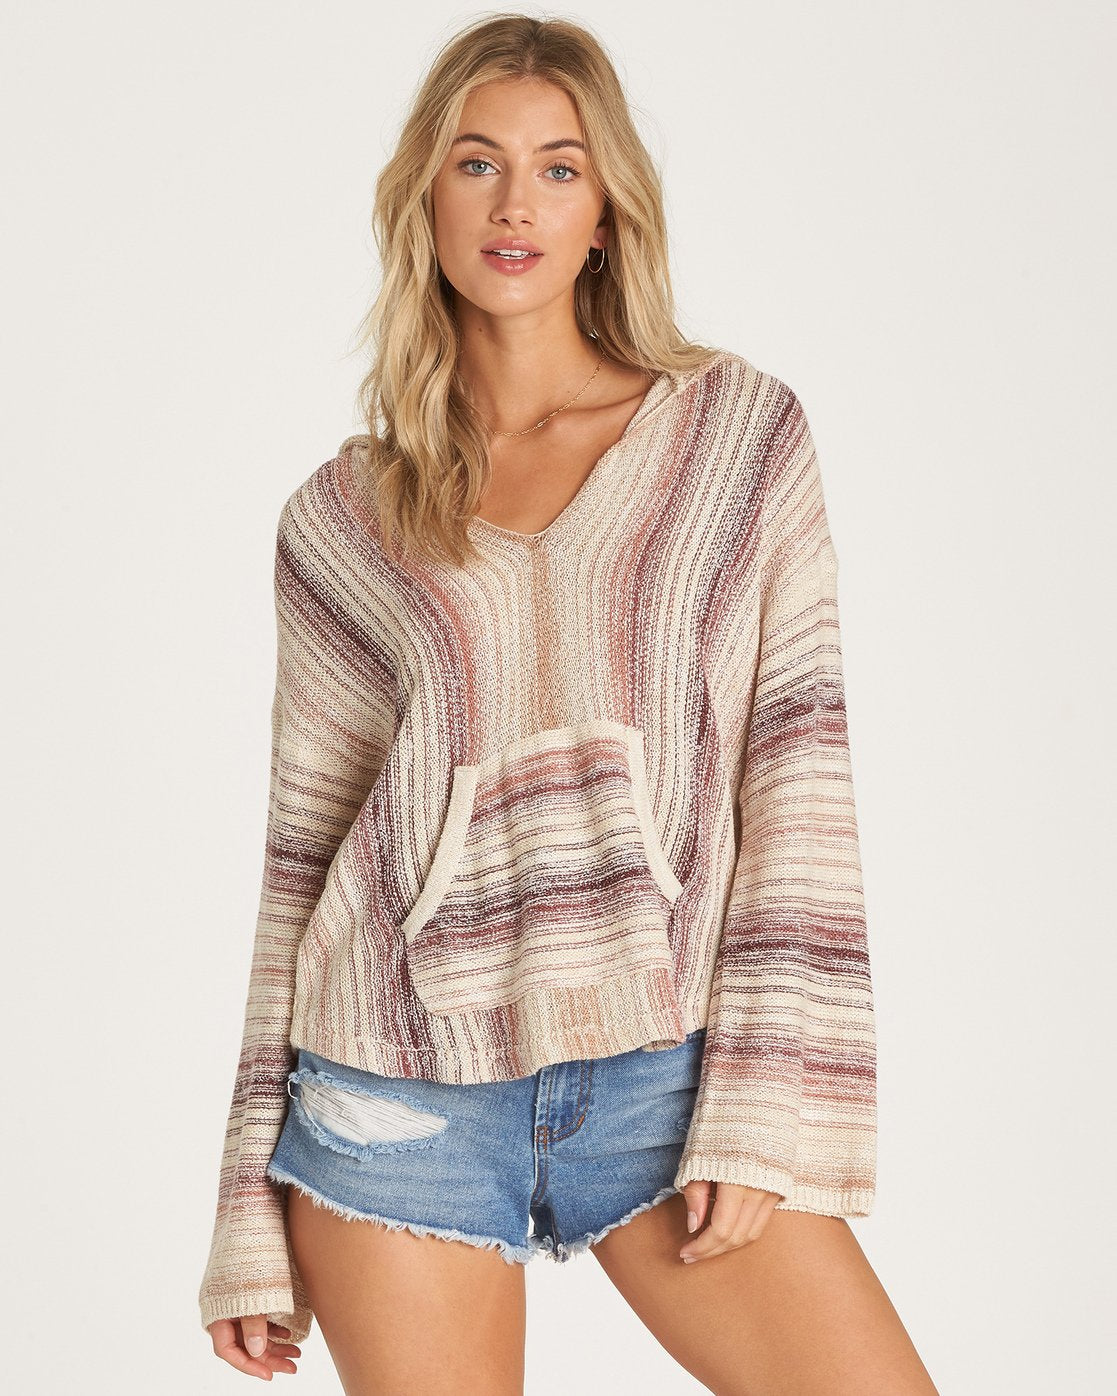 Billabong Baja Beach Coco Berry Women's Pullover